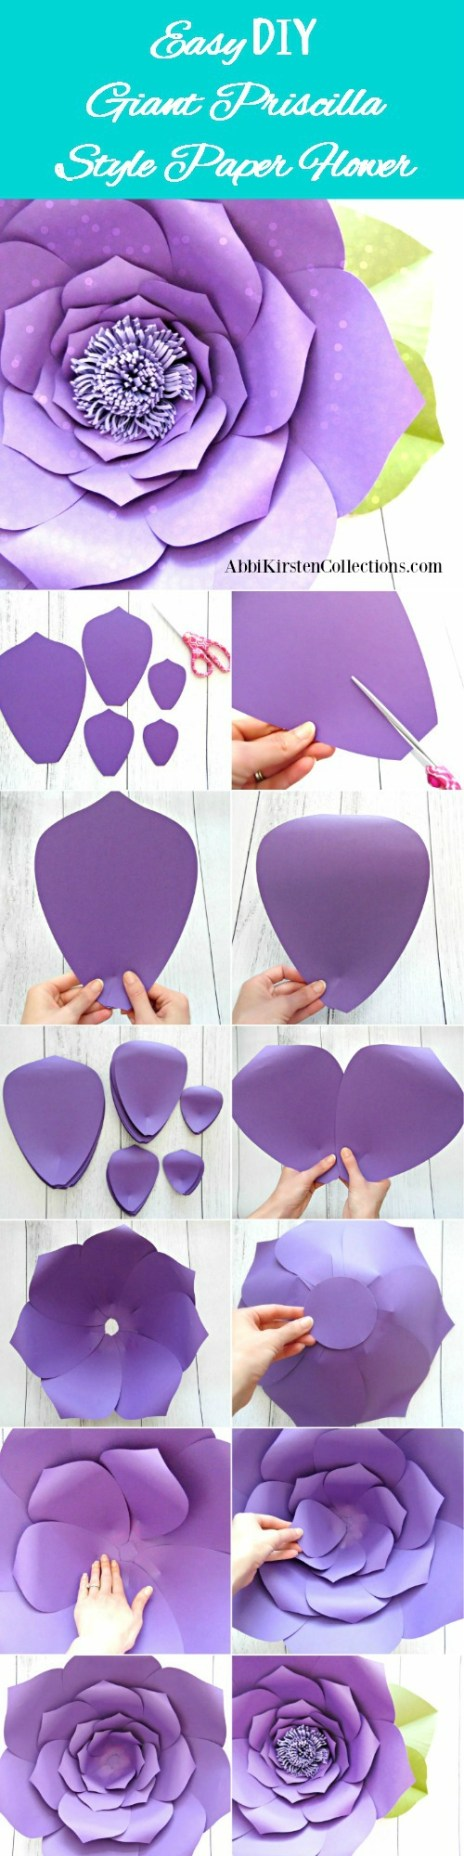 How To Make Giant Paper Flowers Step By Step Tutorial